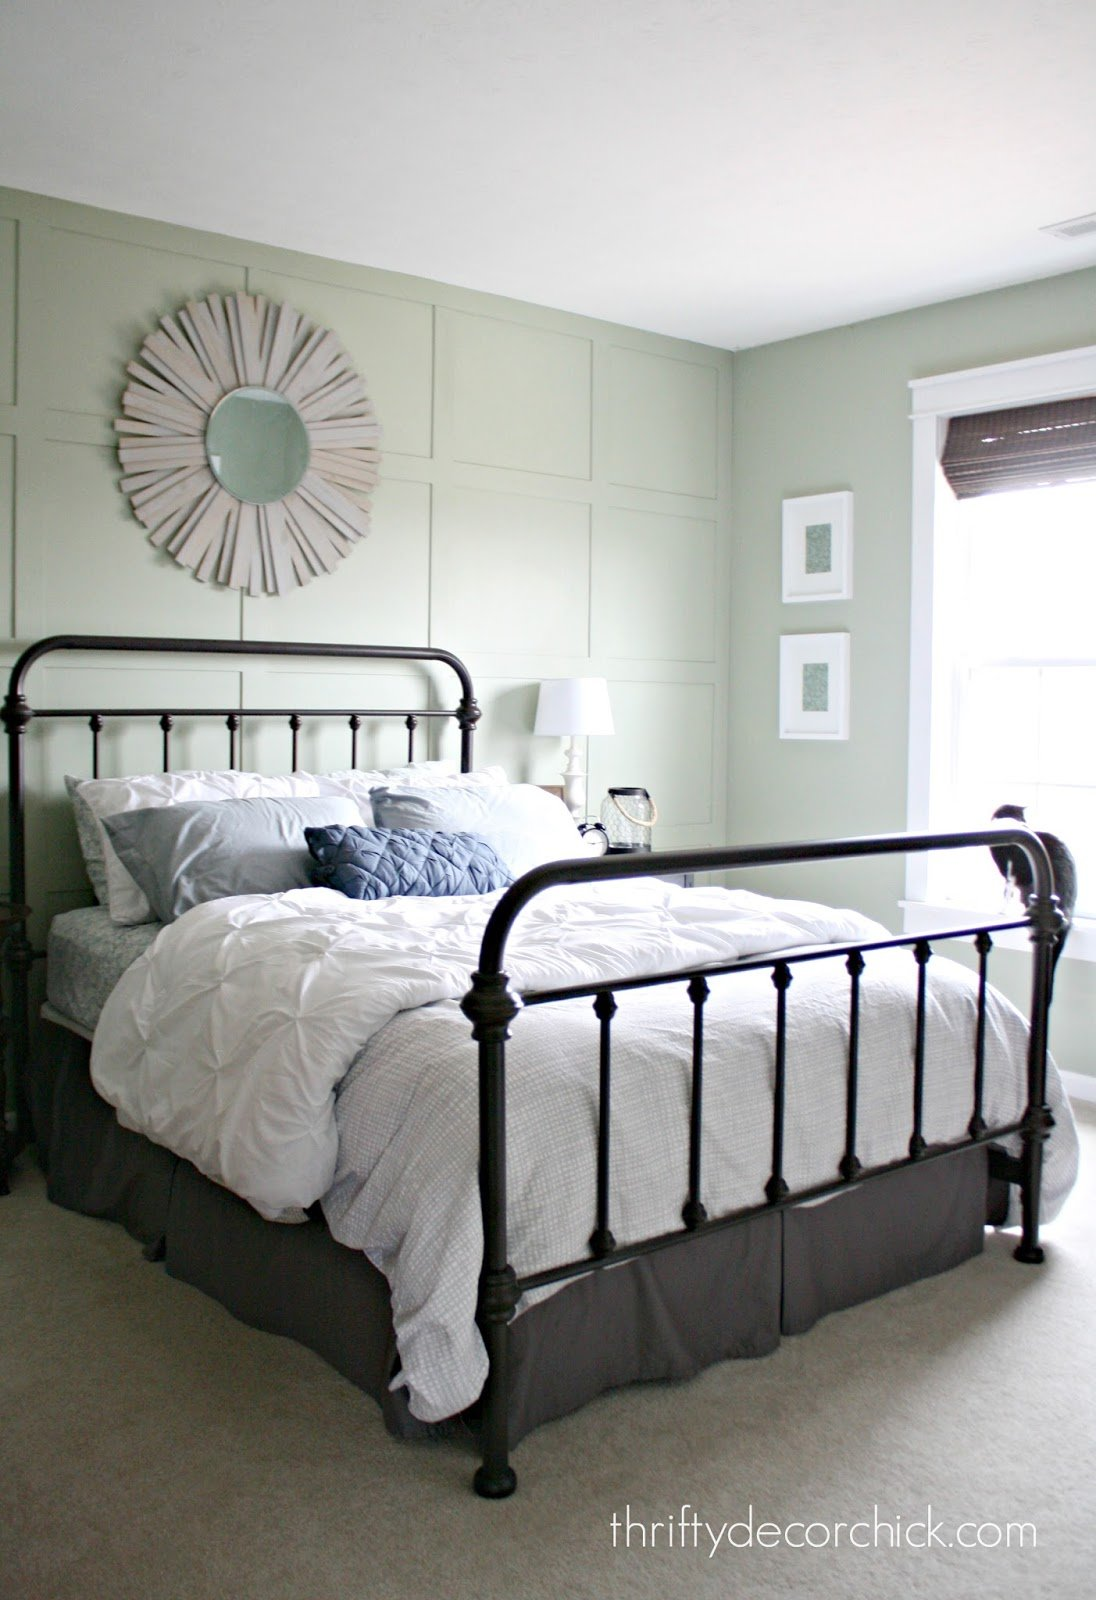 Best A Pretty New Metal Bed From Thrifty Decor Ch*Ck With Pictures